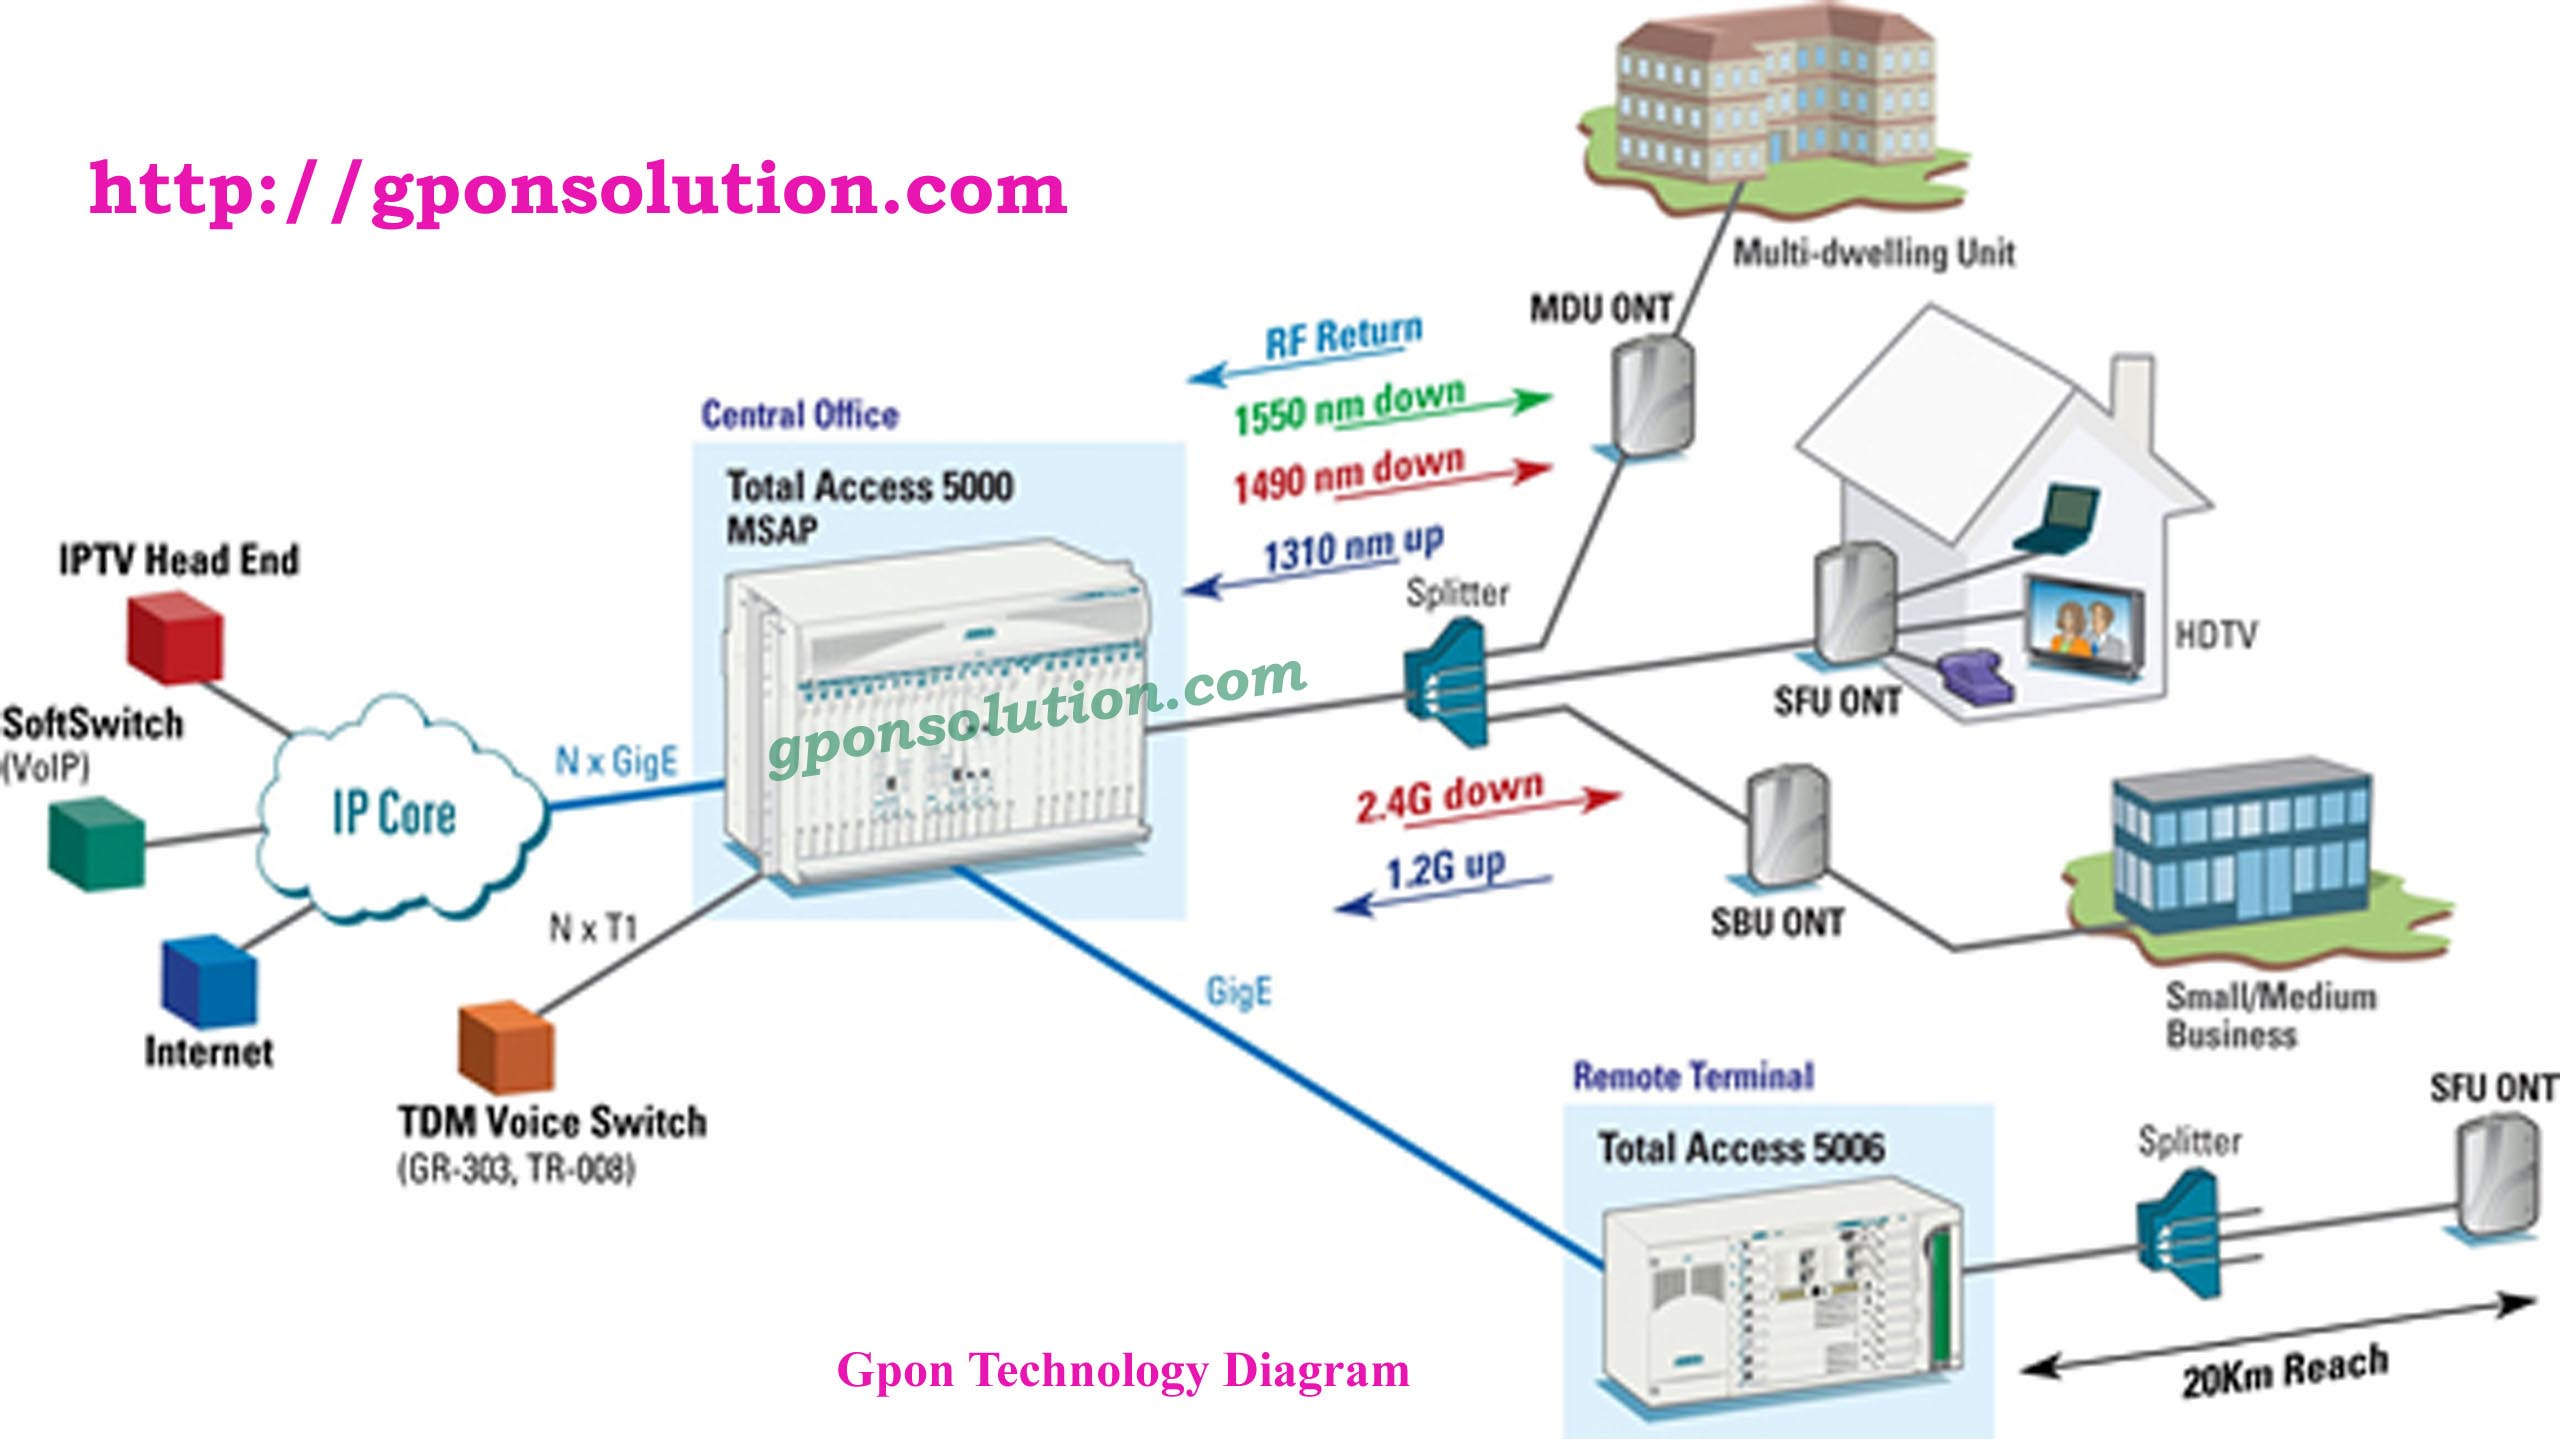 Gpon technology diagram overview gpon solution gpon technology diagram pooptronica